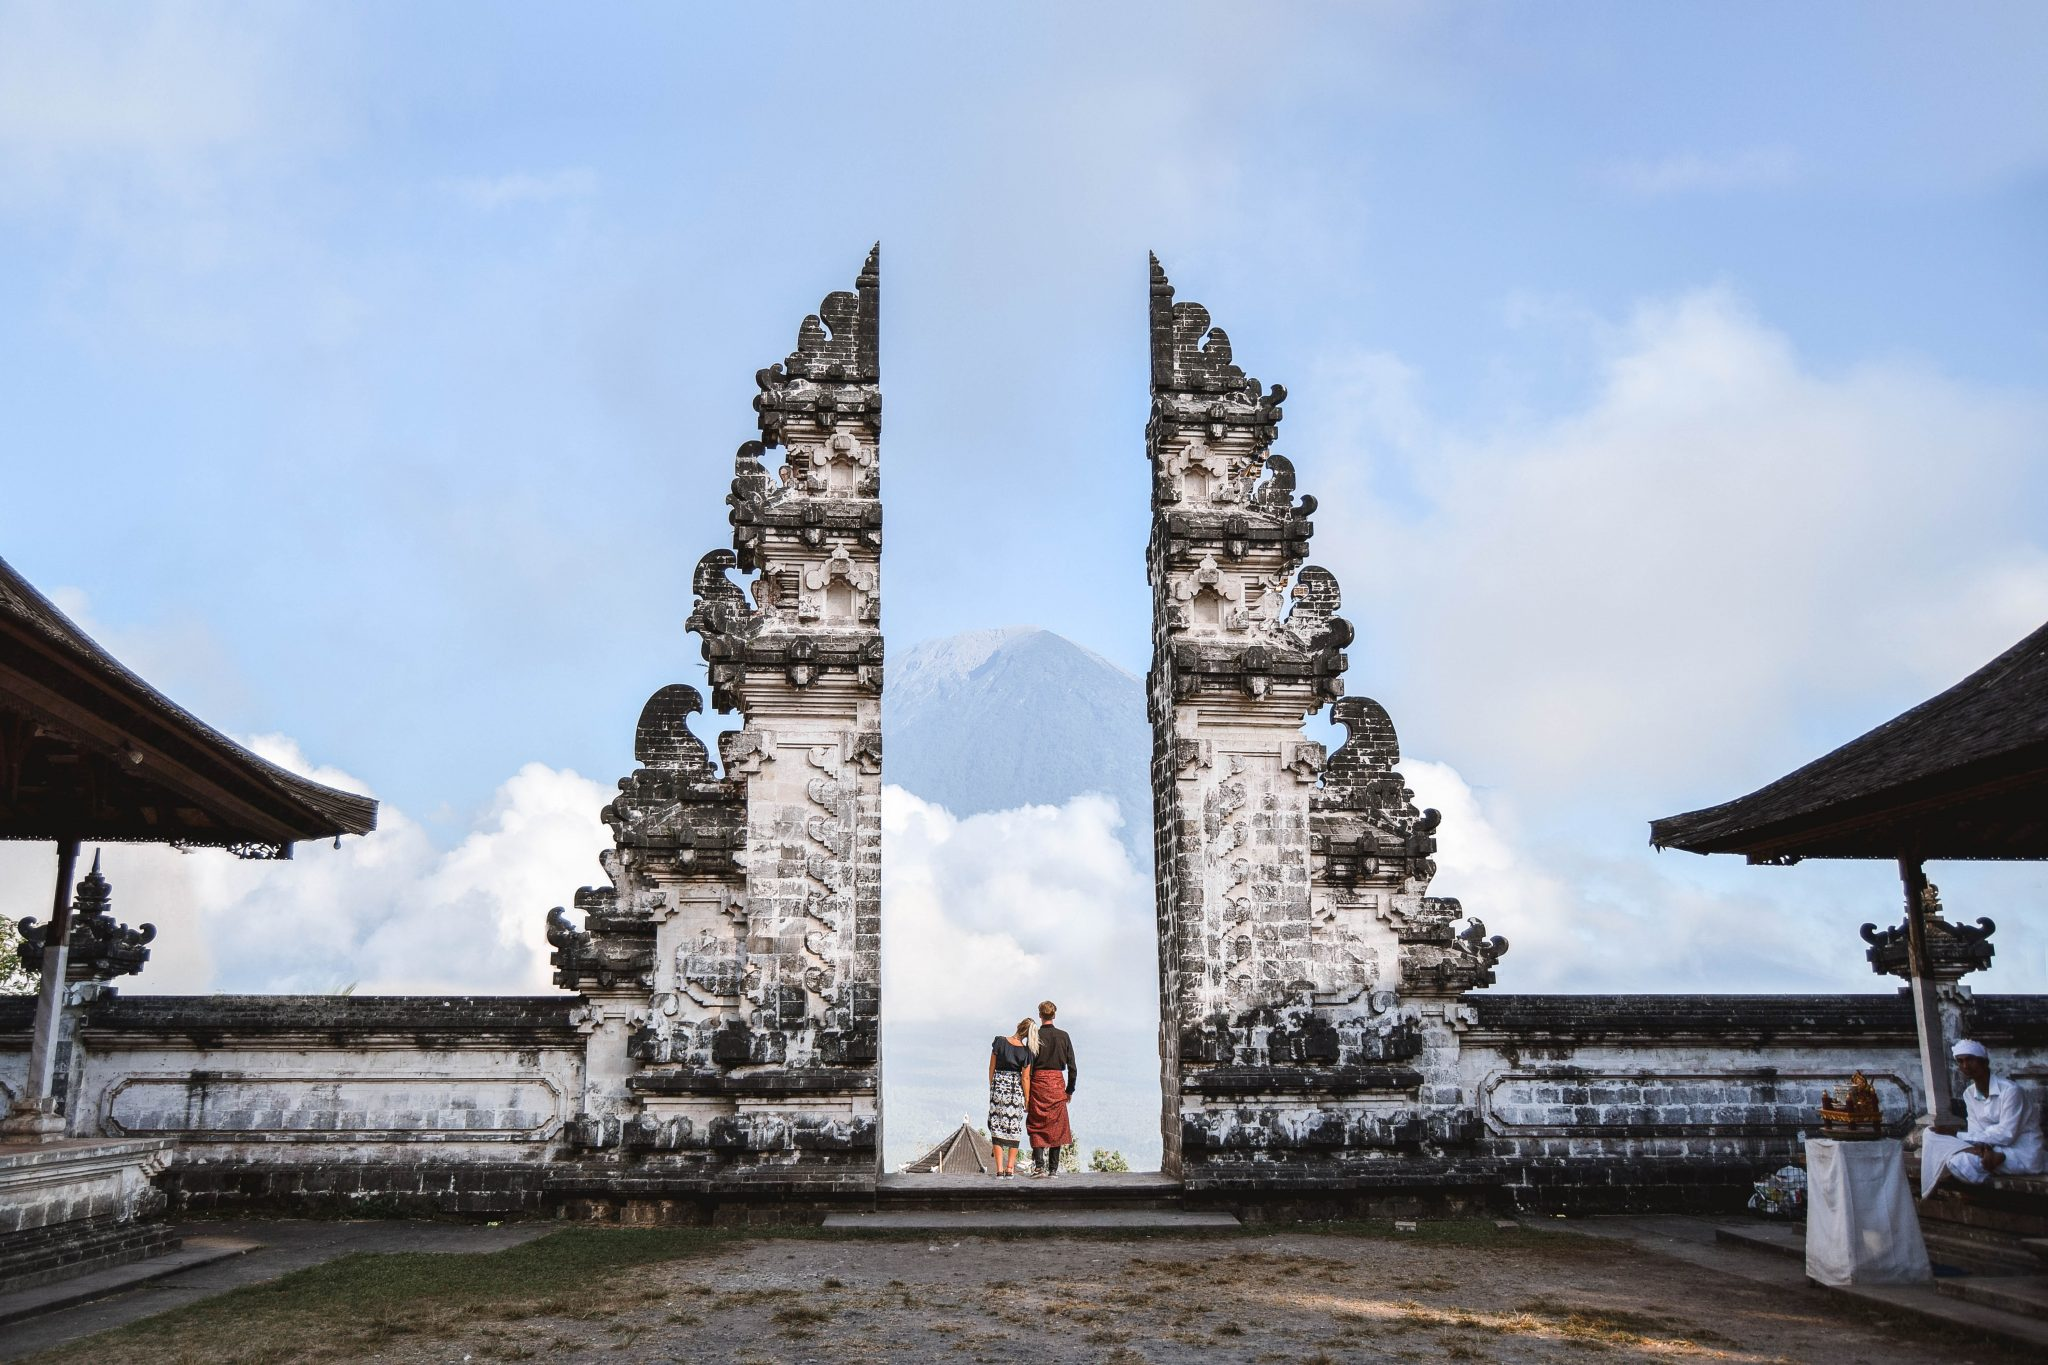 Wanderers & Warriors - Charlie & Lauren UK Travel Couple - Pura Lempuyang Bali - The Gateway To Heaven - Bali Temple - Pura Lempuyang Luhur - Pura Luhur Lempuyang - Pura Lempuyang Door - Pura Lempuyang Temple - Bali Gate - Bali Gateway To Heaven